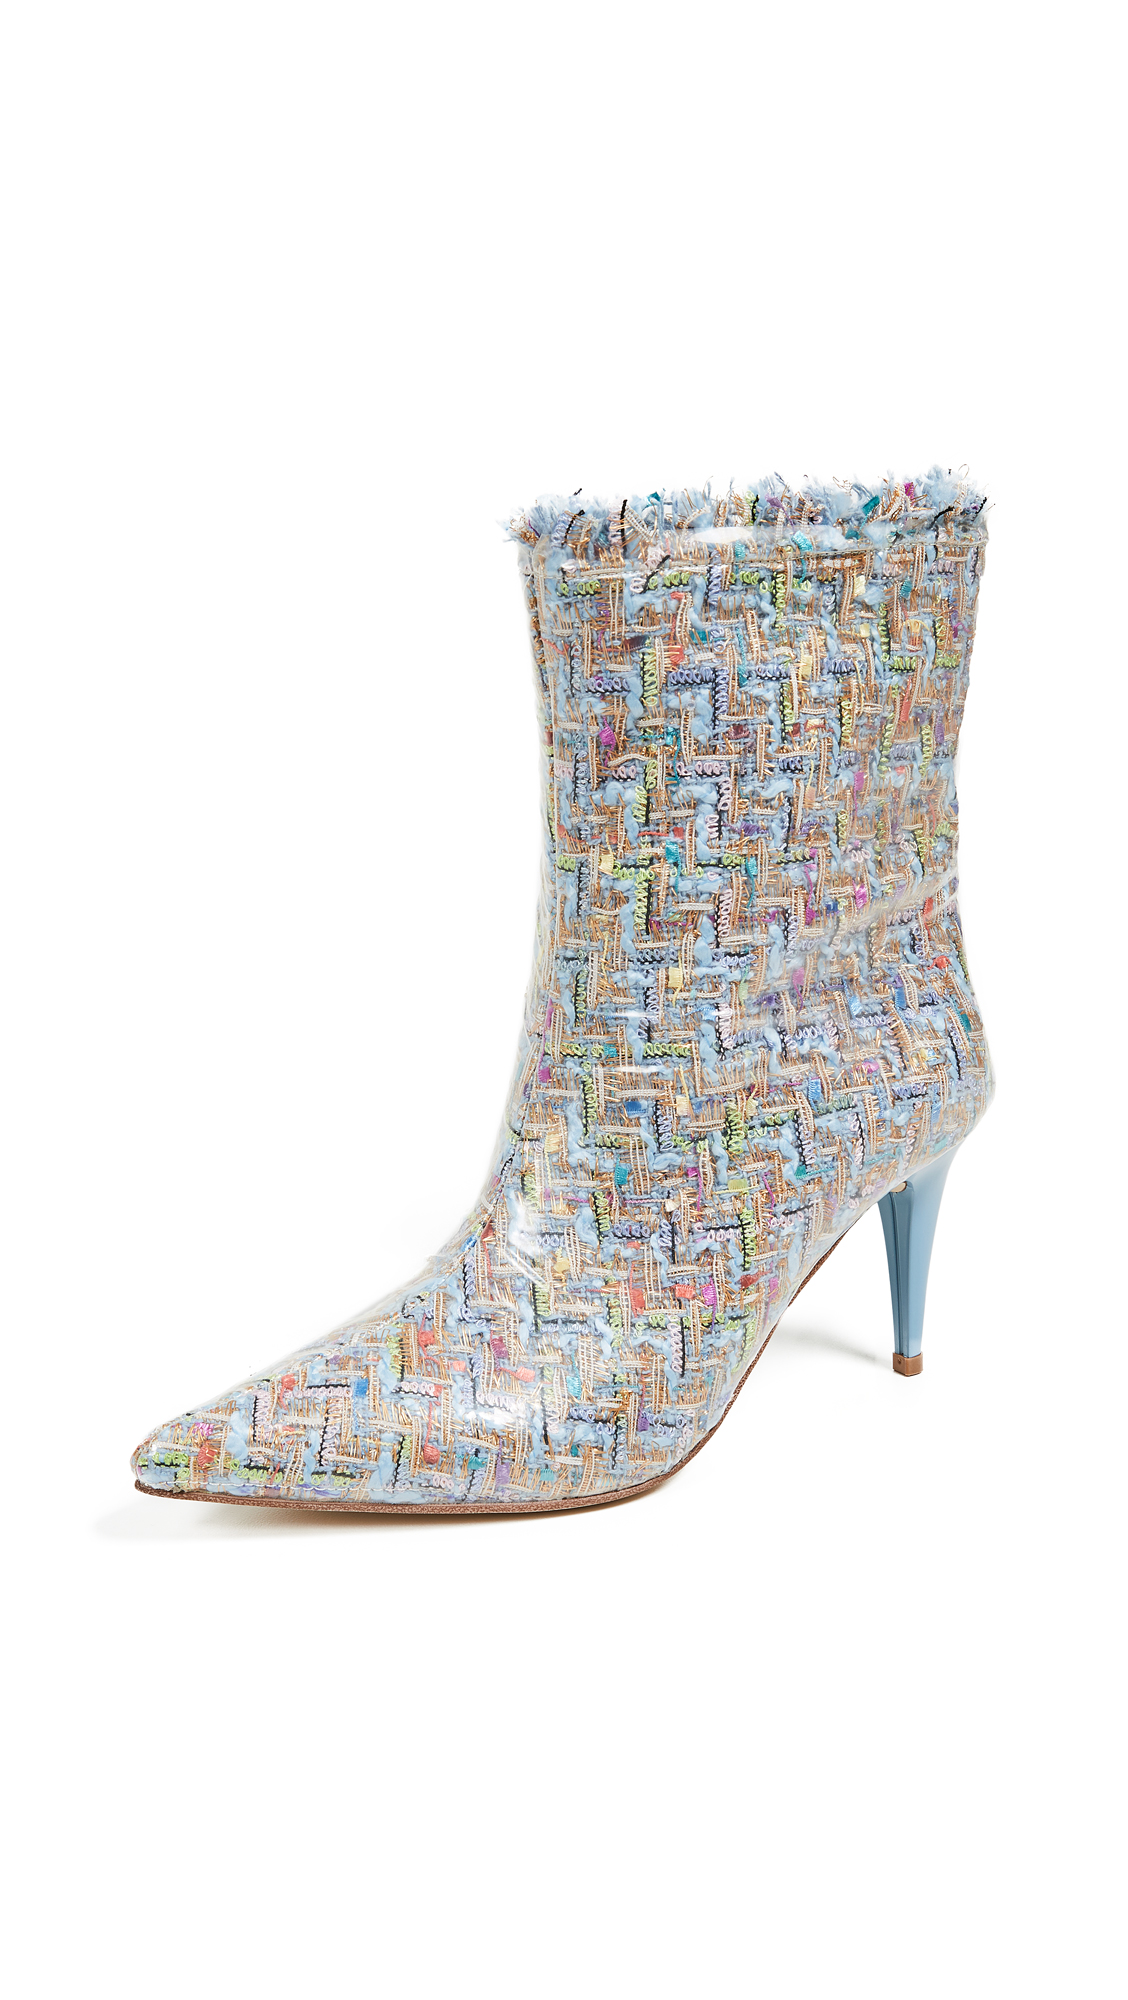 Jeffrey Campbell Plastique Point Toe Boots - Baby Blue/Clear